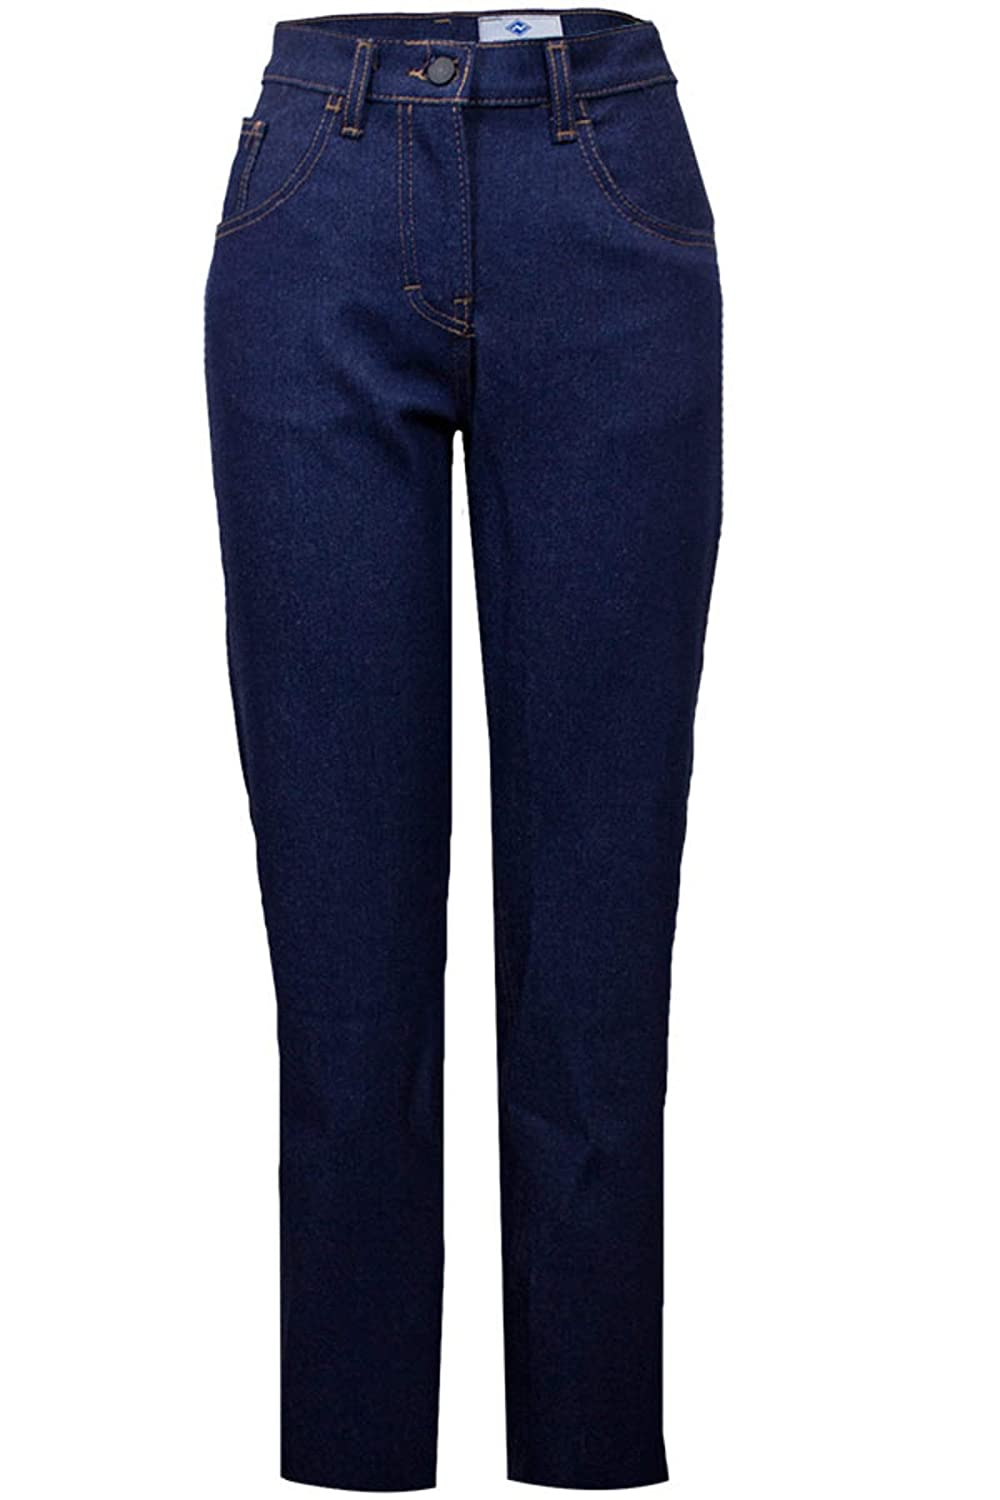 National Safety Apparel PNTDYJW2X32 Women's Same day shipping Resistant Jean Mail order cheap Flame